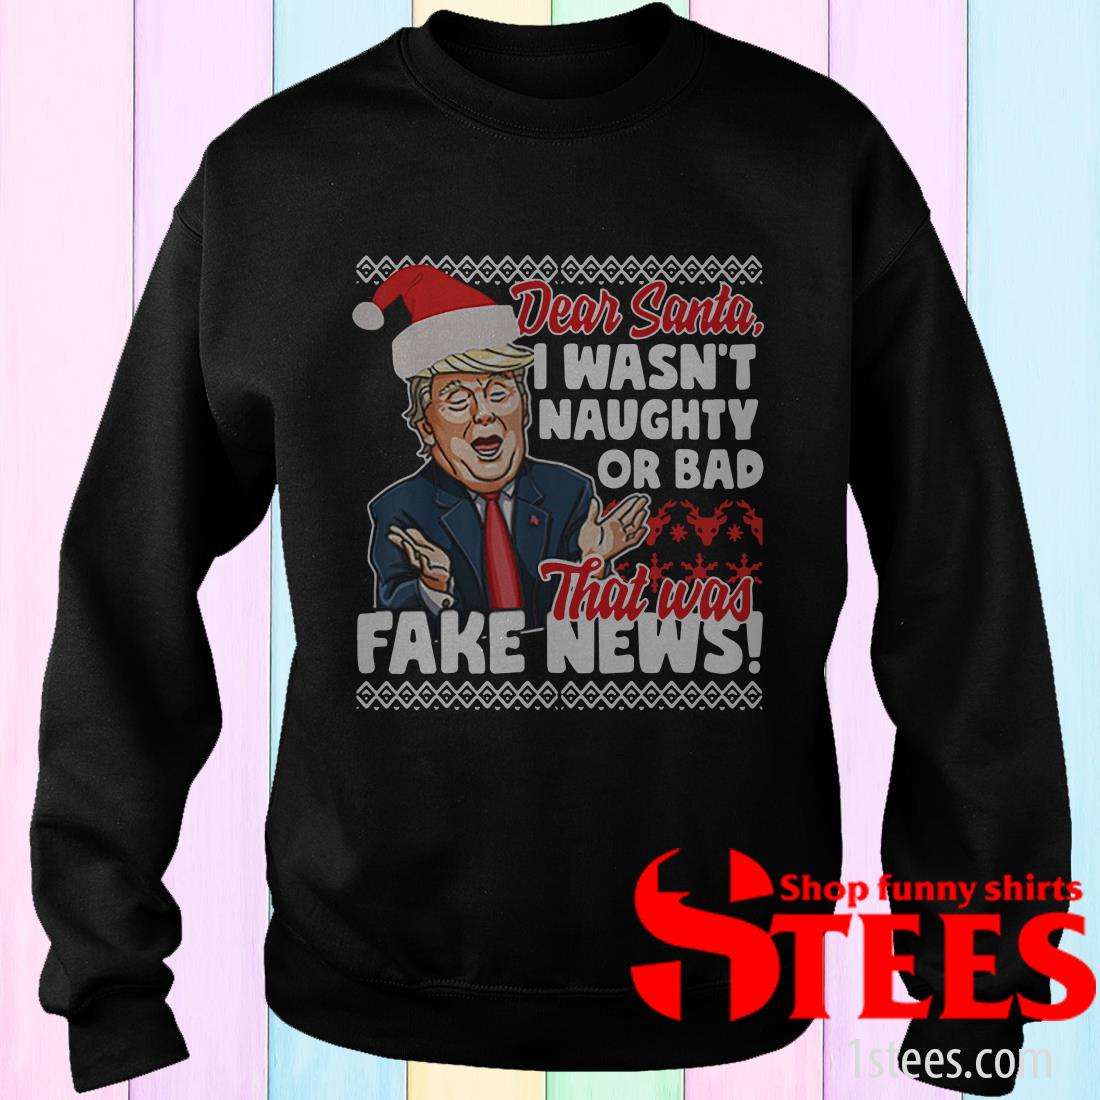 Donald Trump Fake News Ugly Christmas Sweatshirt